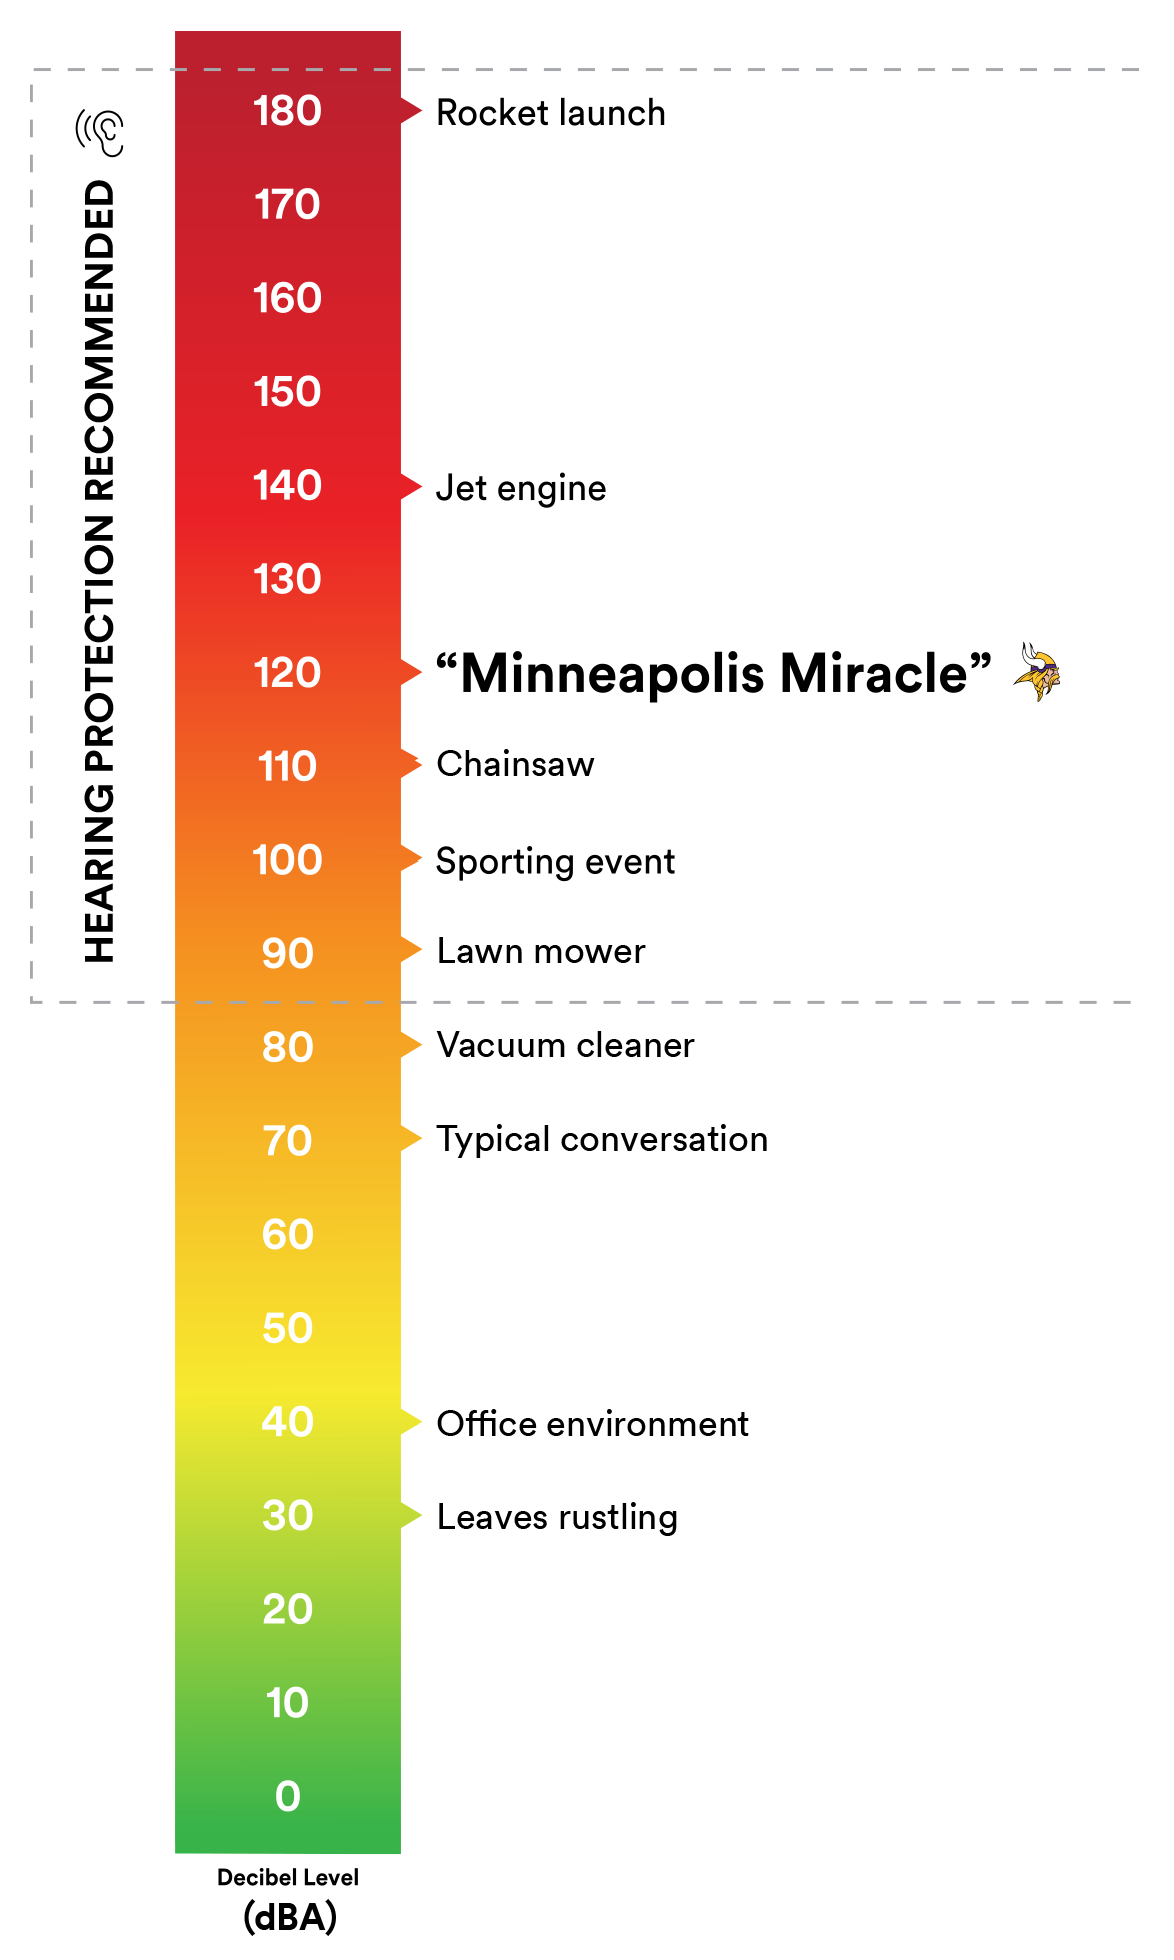 decibel level of various sounds that could be hazards to your hearing